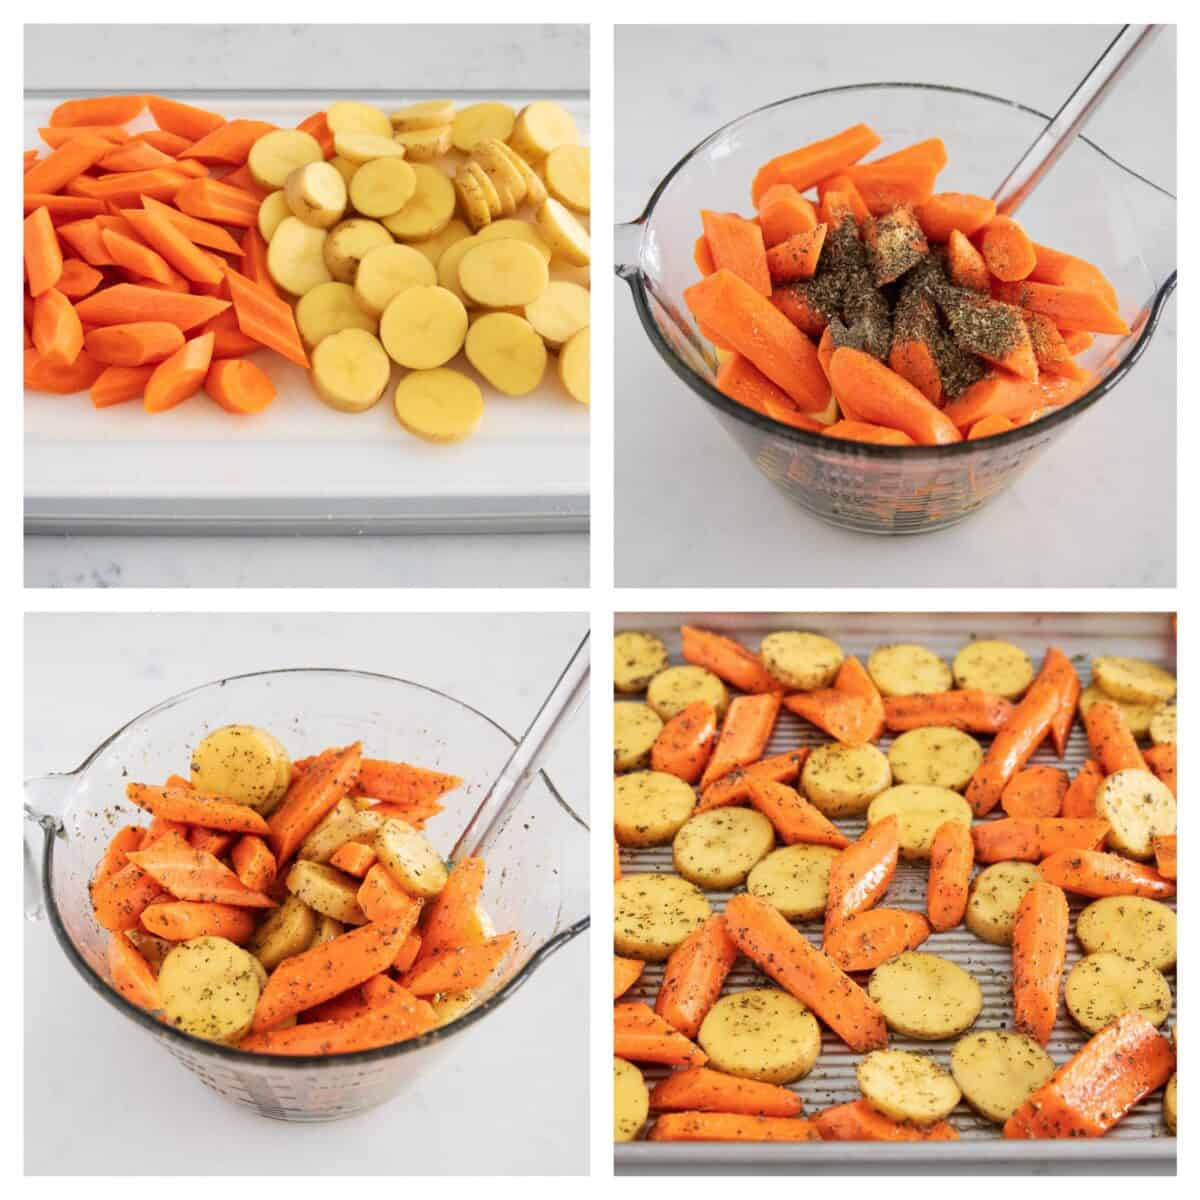 roasted potatoes and carrots collage